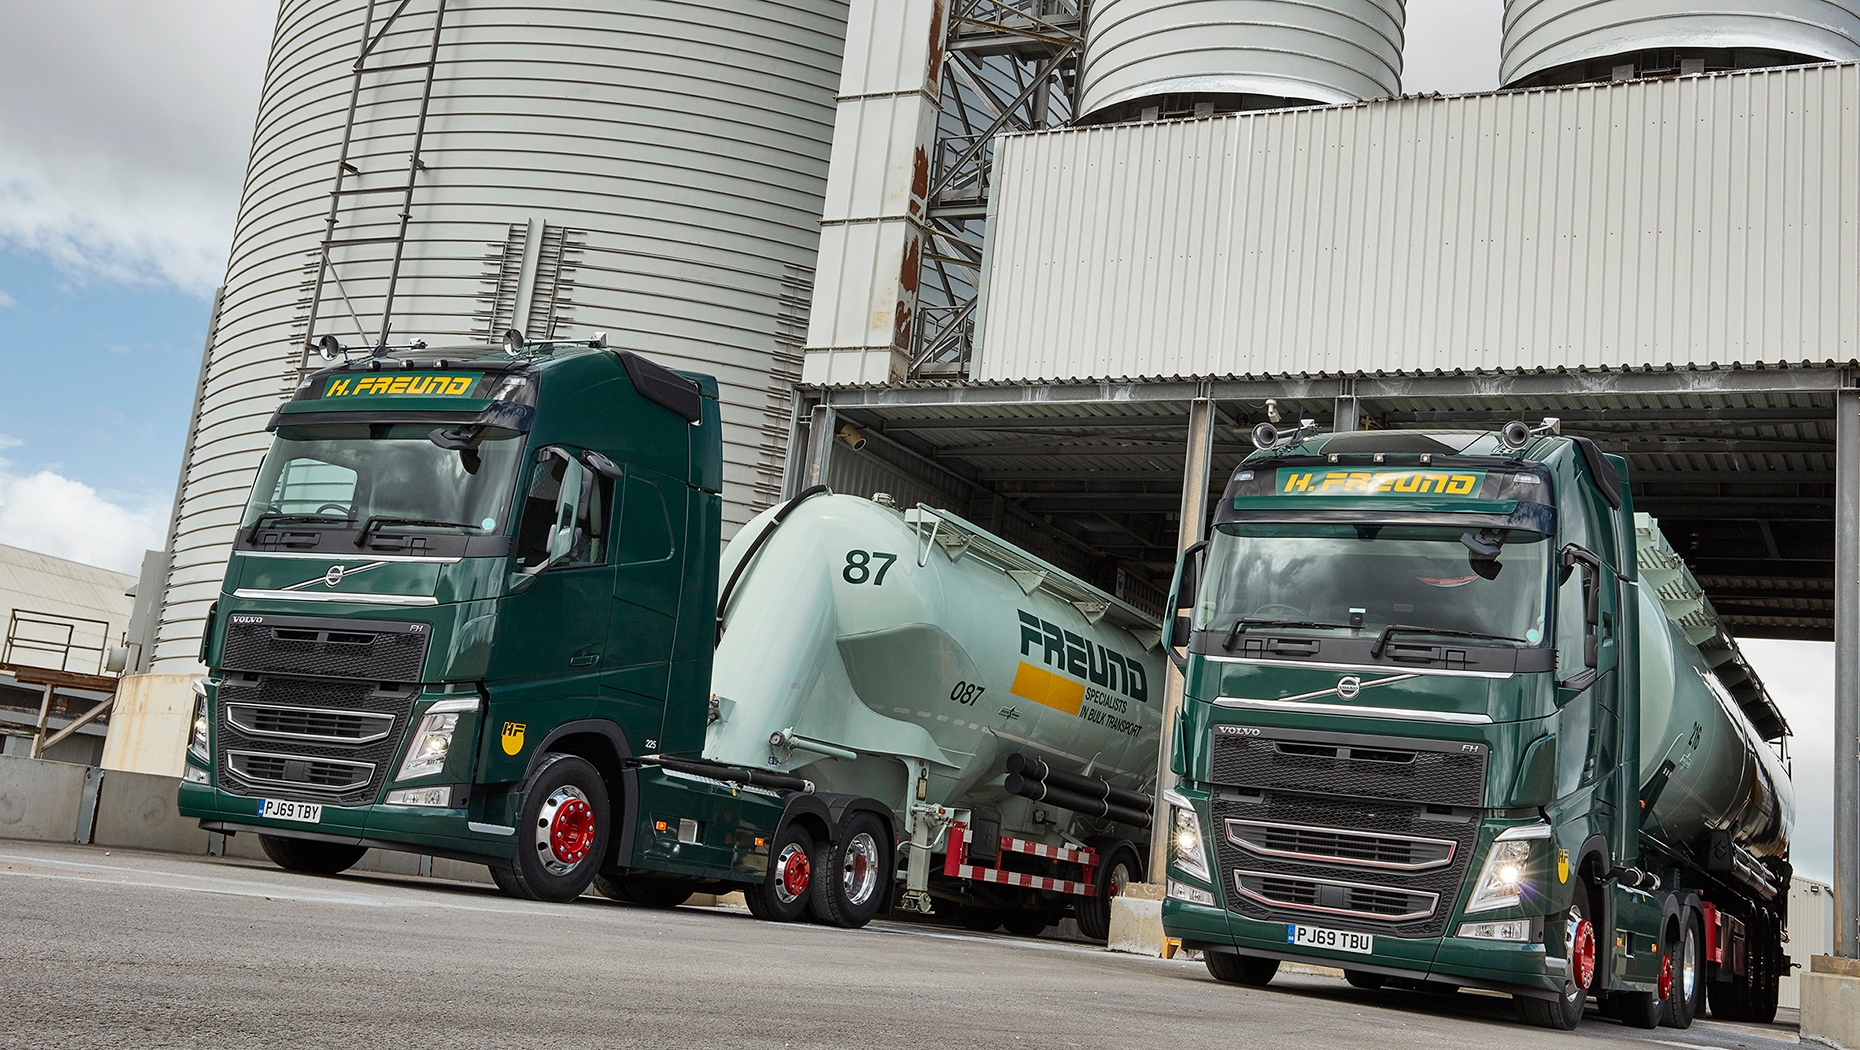 H. Freund has taken delivery of four new Volvo FH 6x2 tractor units with flagship Globetrotter XL cabs